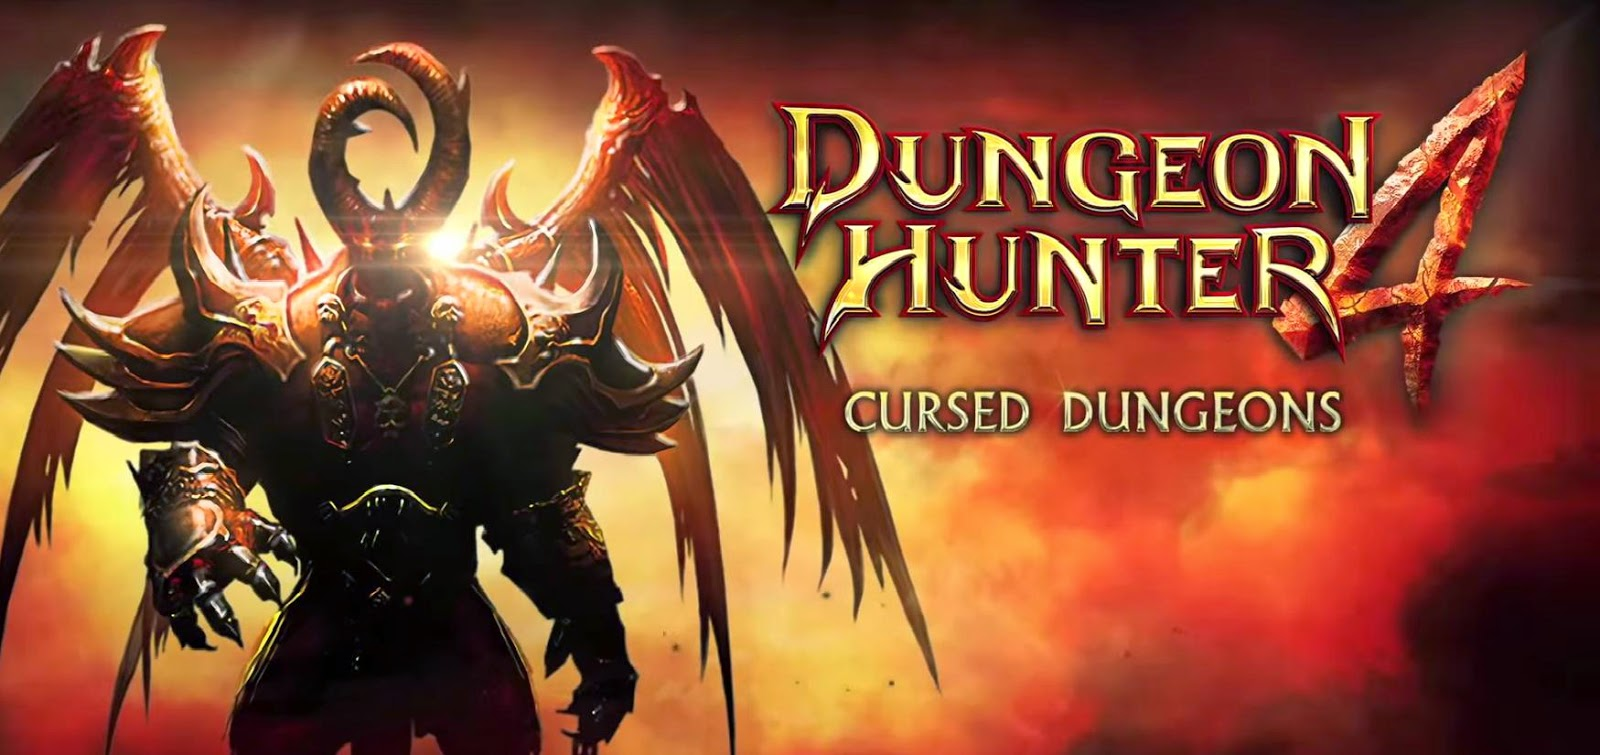 Dungeon Hunter 4 v1.7.0 Apk ModUnlimited Coins dan Gems